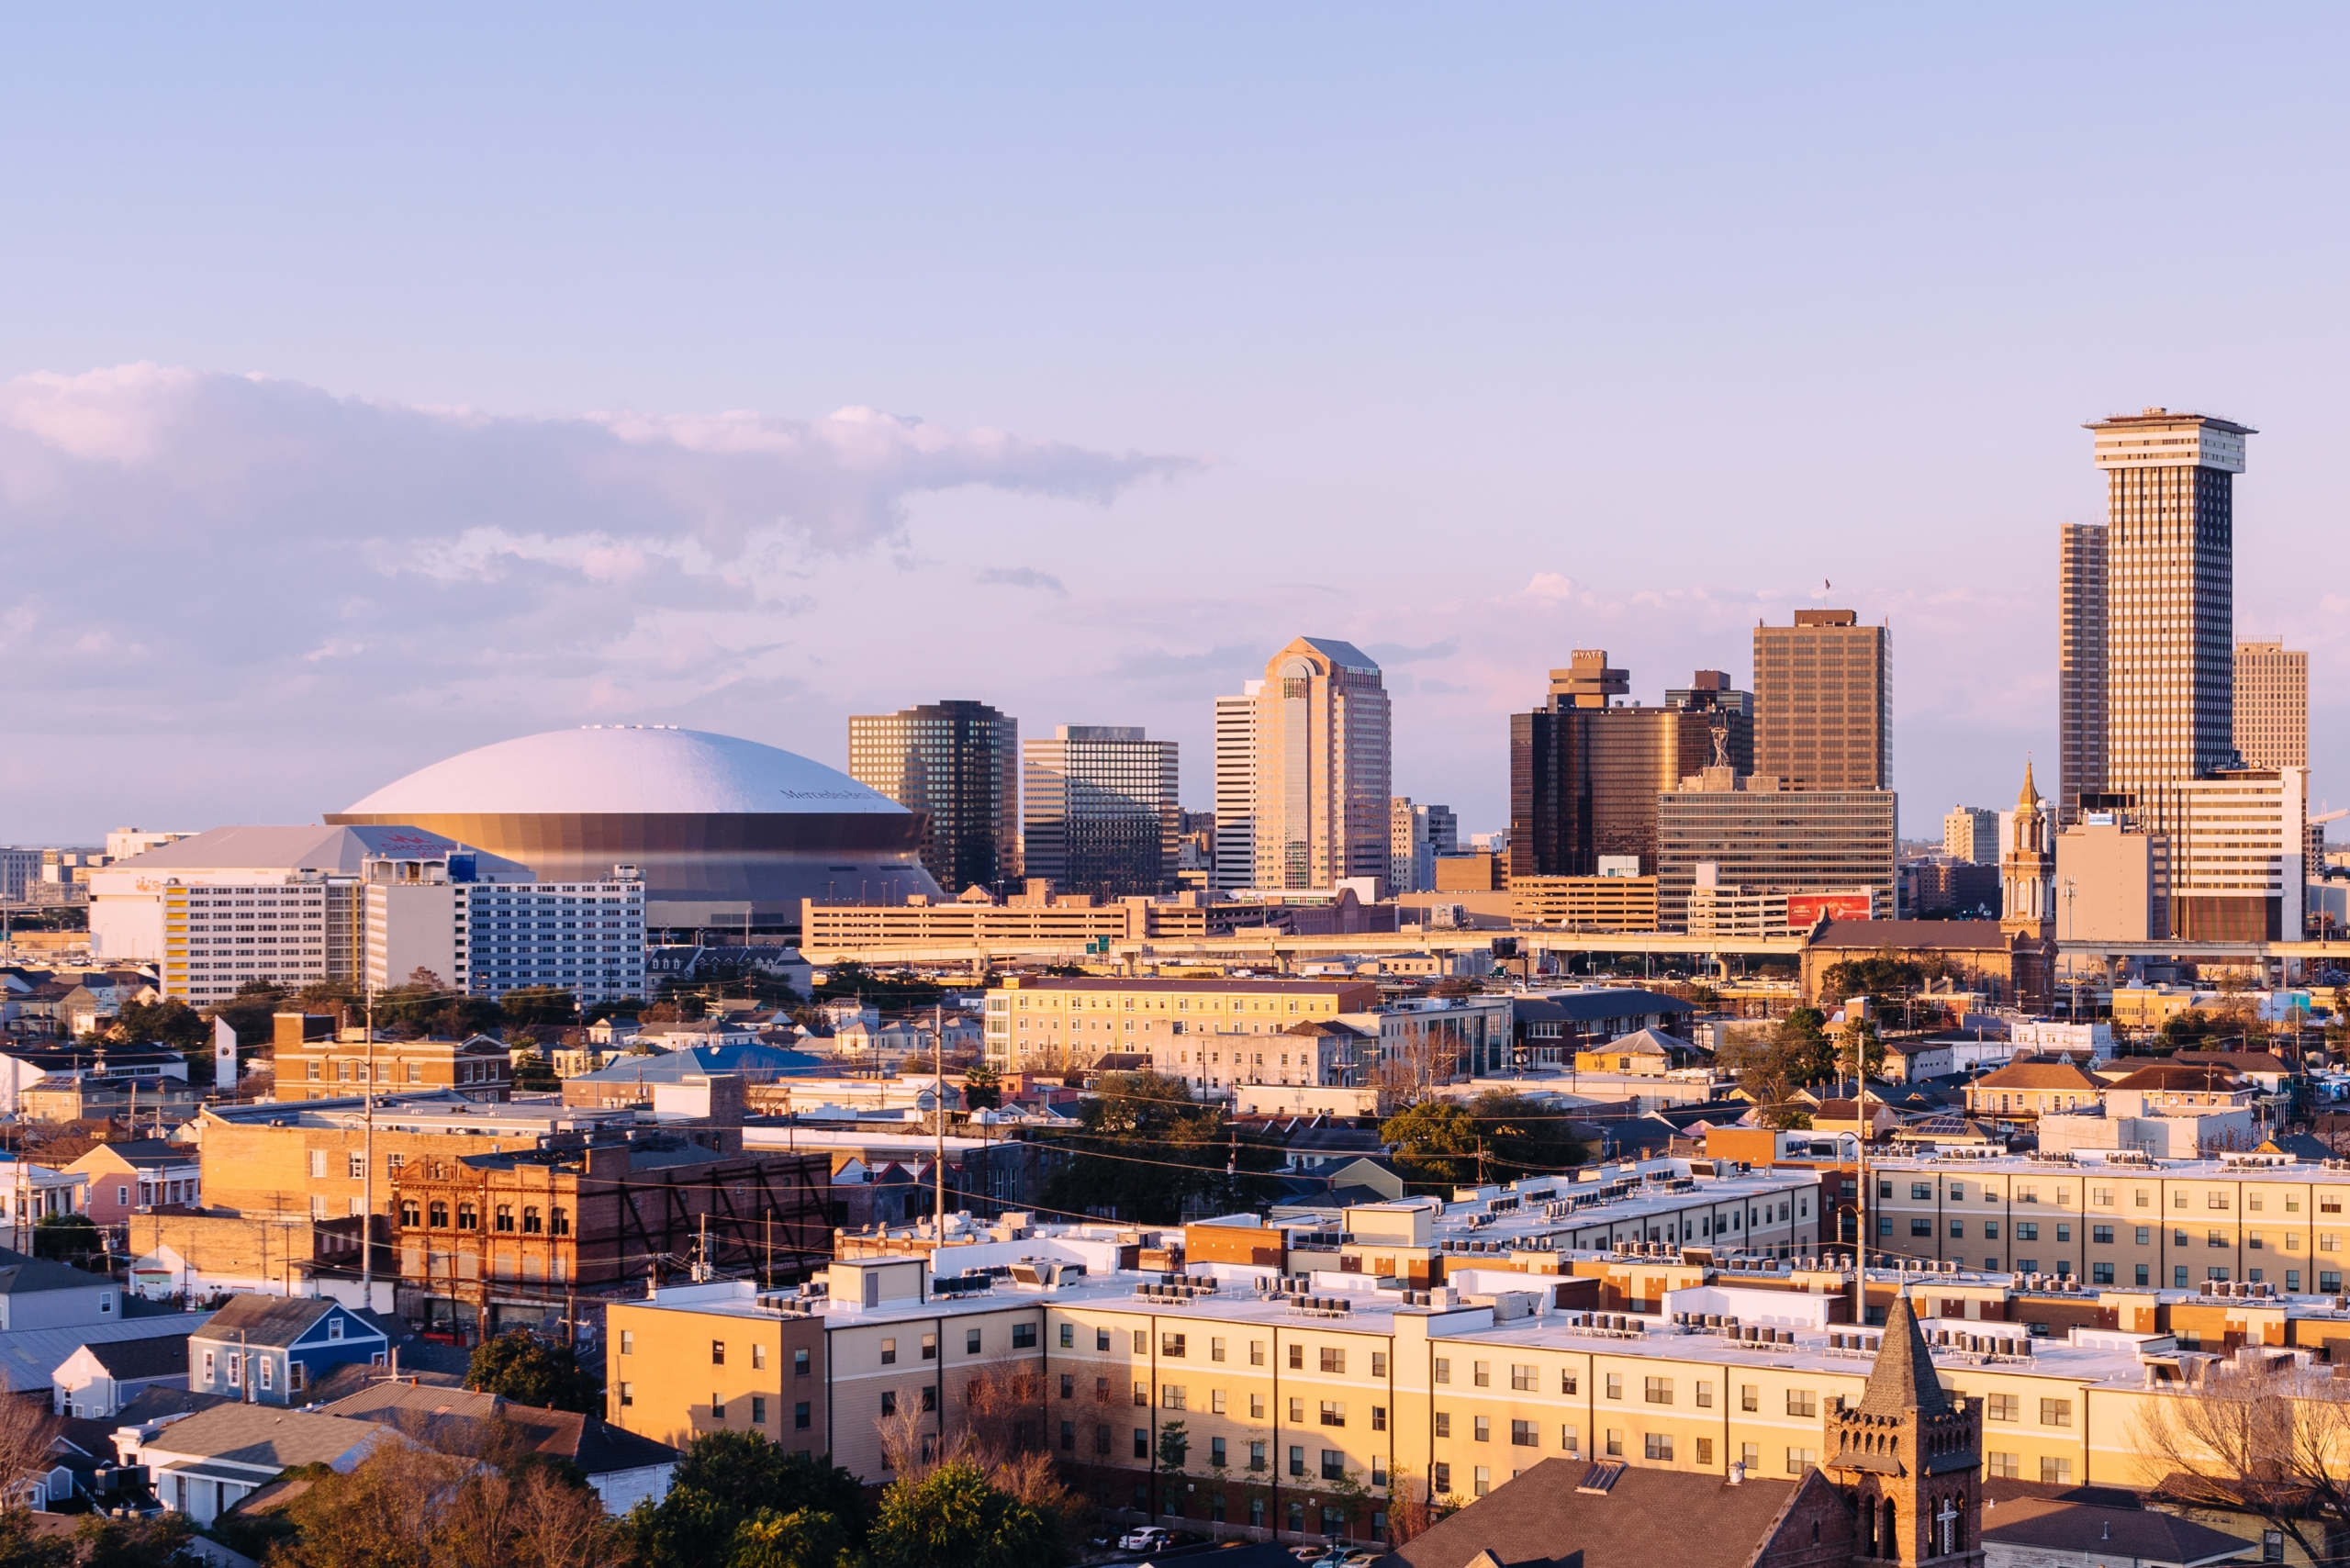 Sweeping view of downtown New Orleans